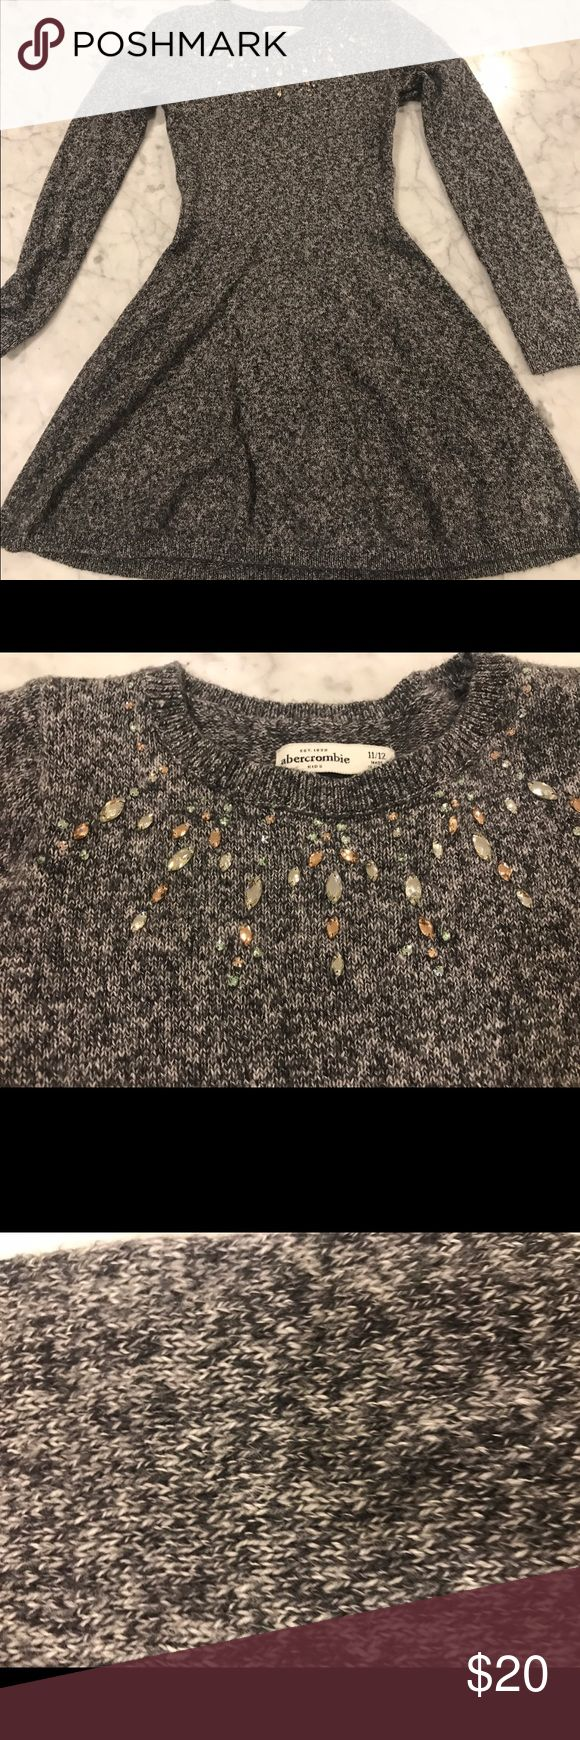 Abercrombie Girls sweater dress In great shape really pretty rhinestones no damage wore twice. Fits more like a 10 but stretches . Make me an offer I do same day Mail out Abercrombie & Fitch Dresses